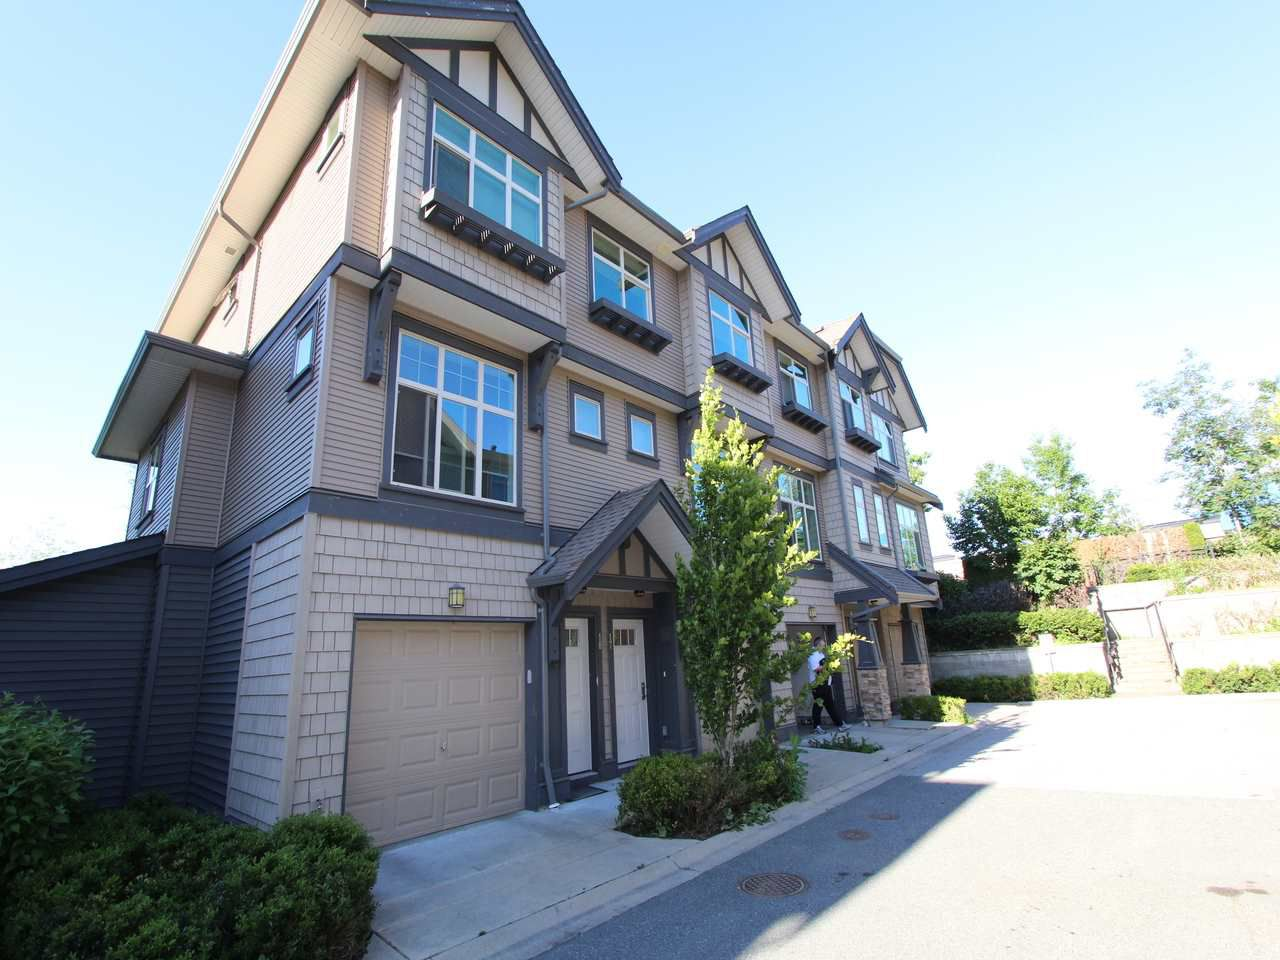 Main Photo: 17 31125 WESTRIDGE Place in Abbotsford: Abbotsford West Townhouse for sale : MLS®# R2194447